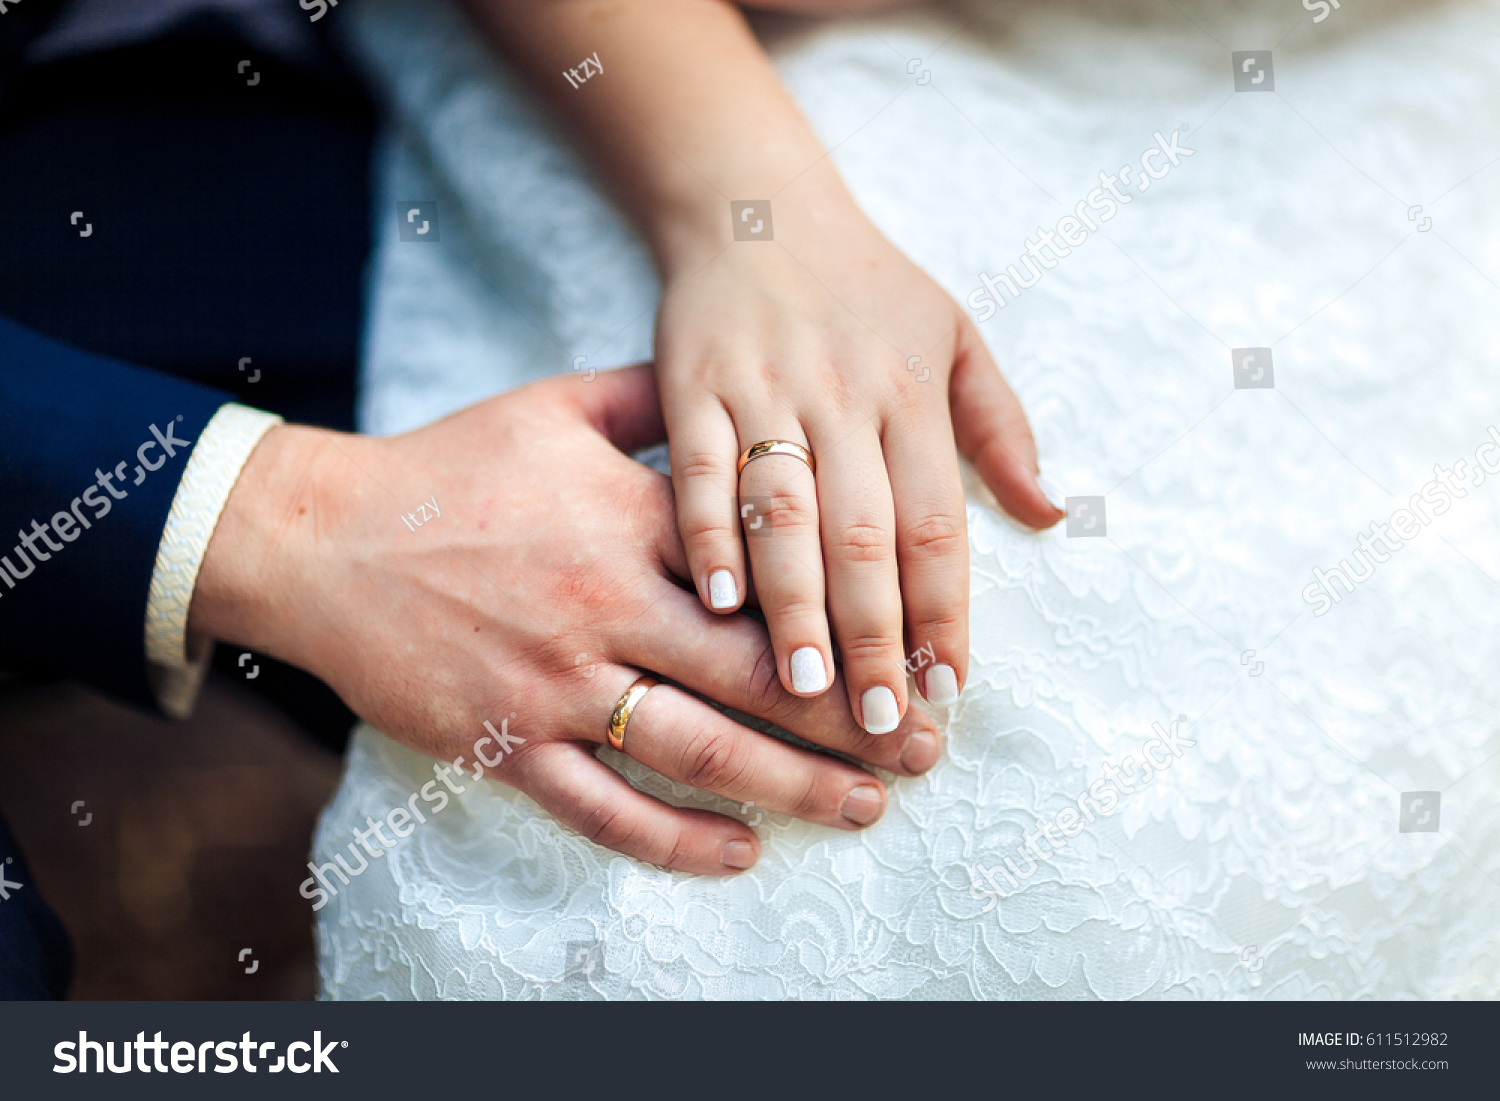 Newly wed couples hands wedding rings stock photo 611512982 newly wed couples hands with wedding rings kristyandbryce Image collections